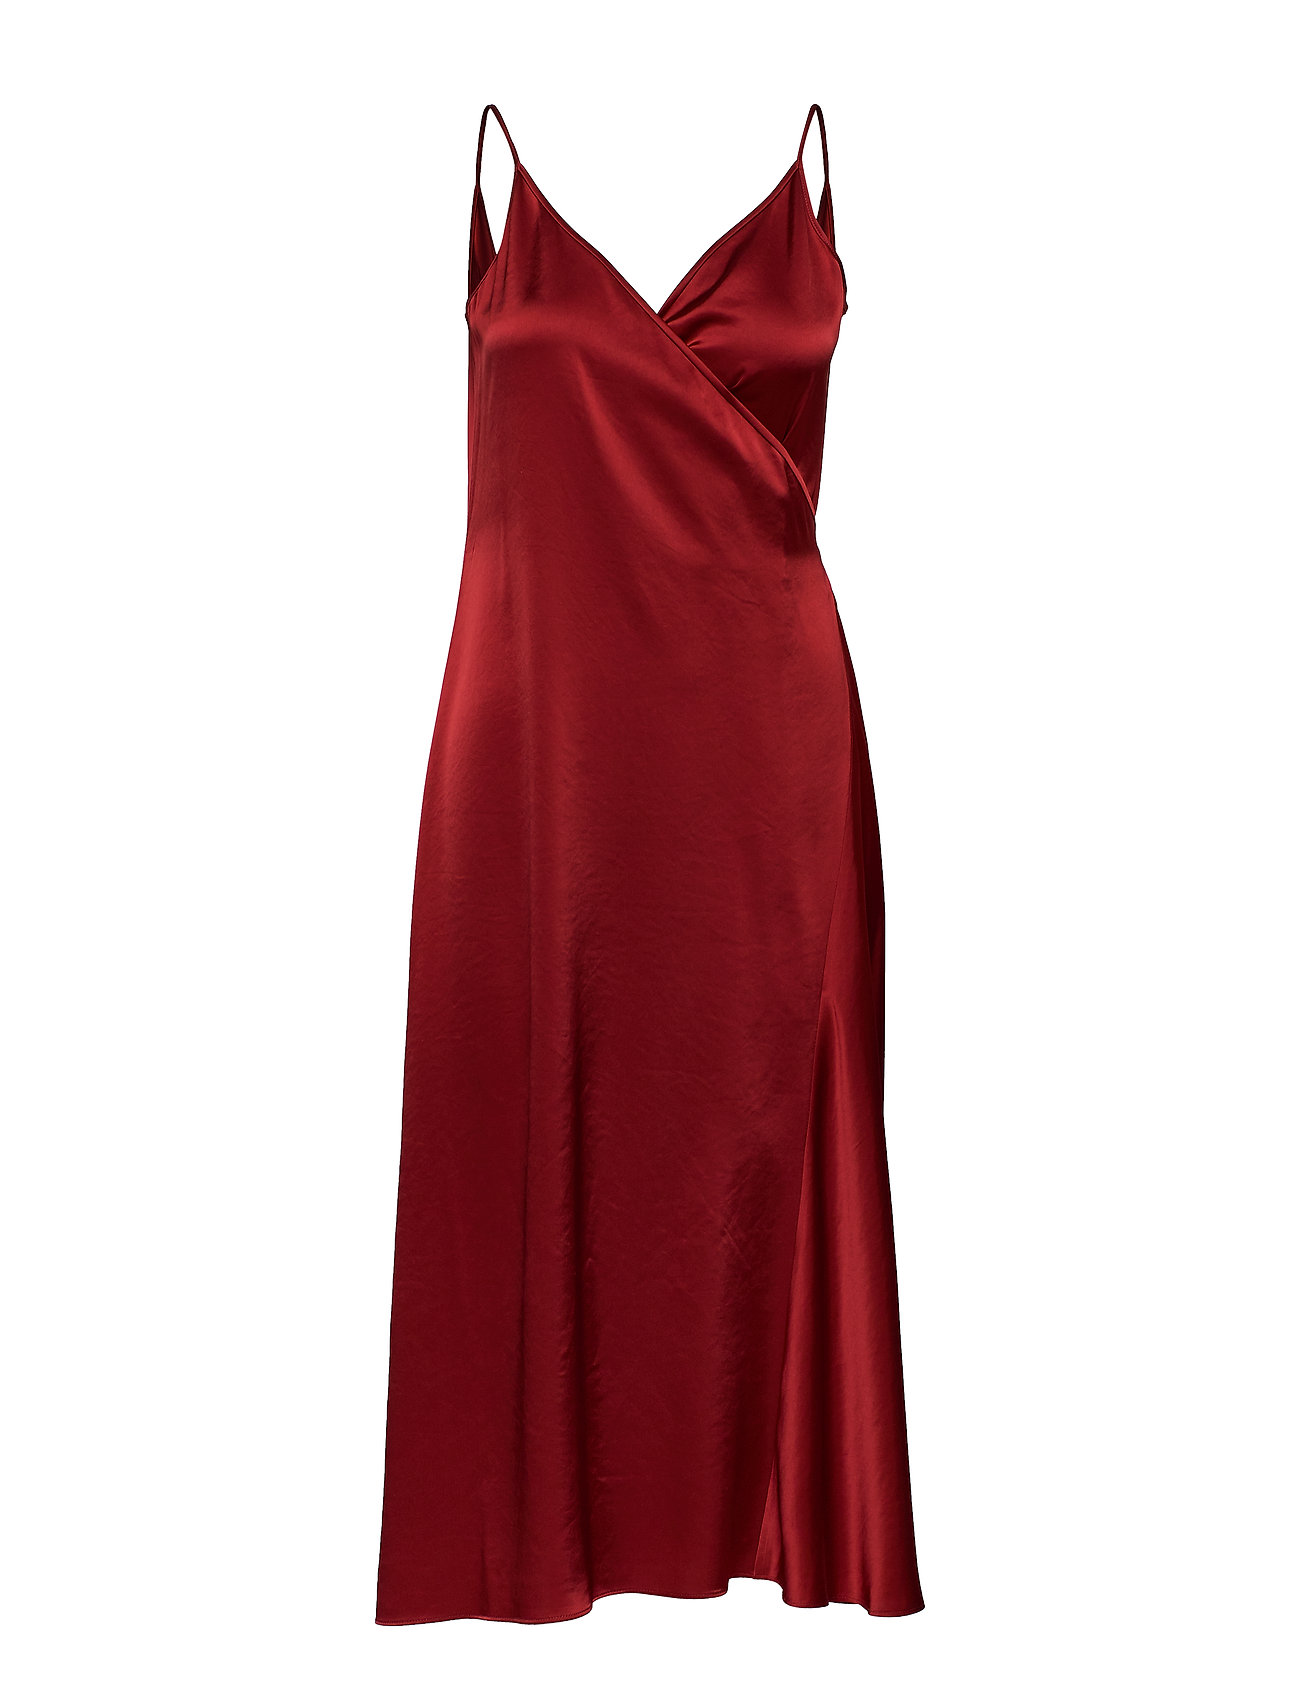 Filippa K Callie Dress - PURE RED